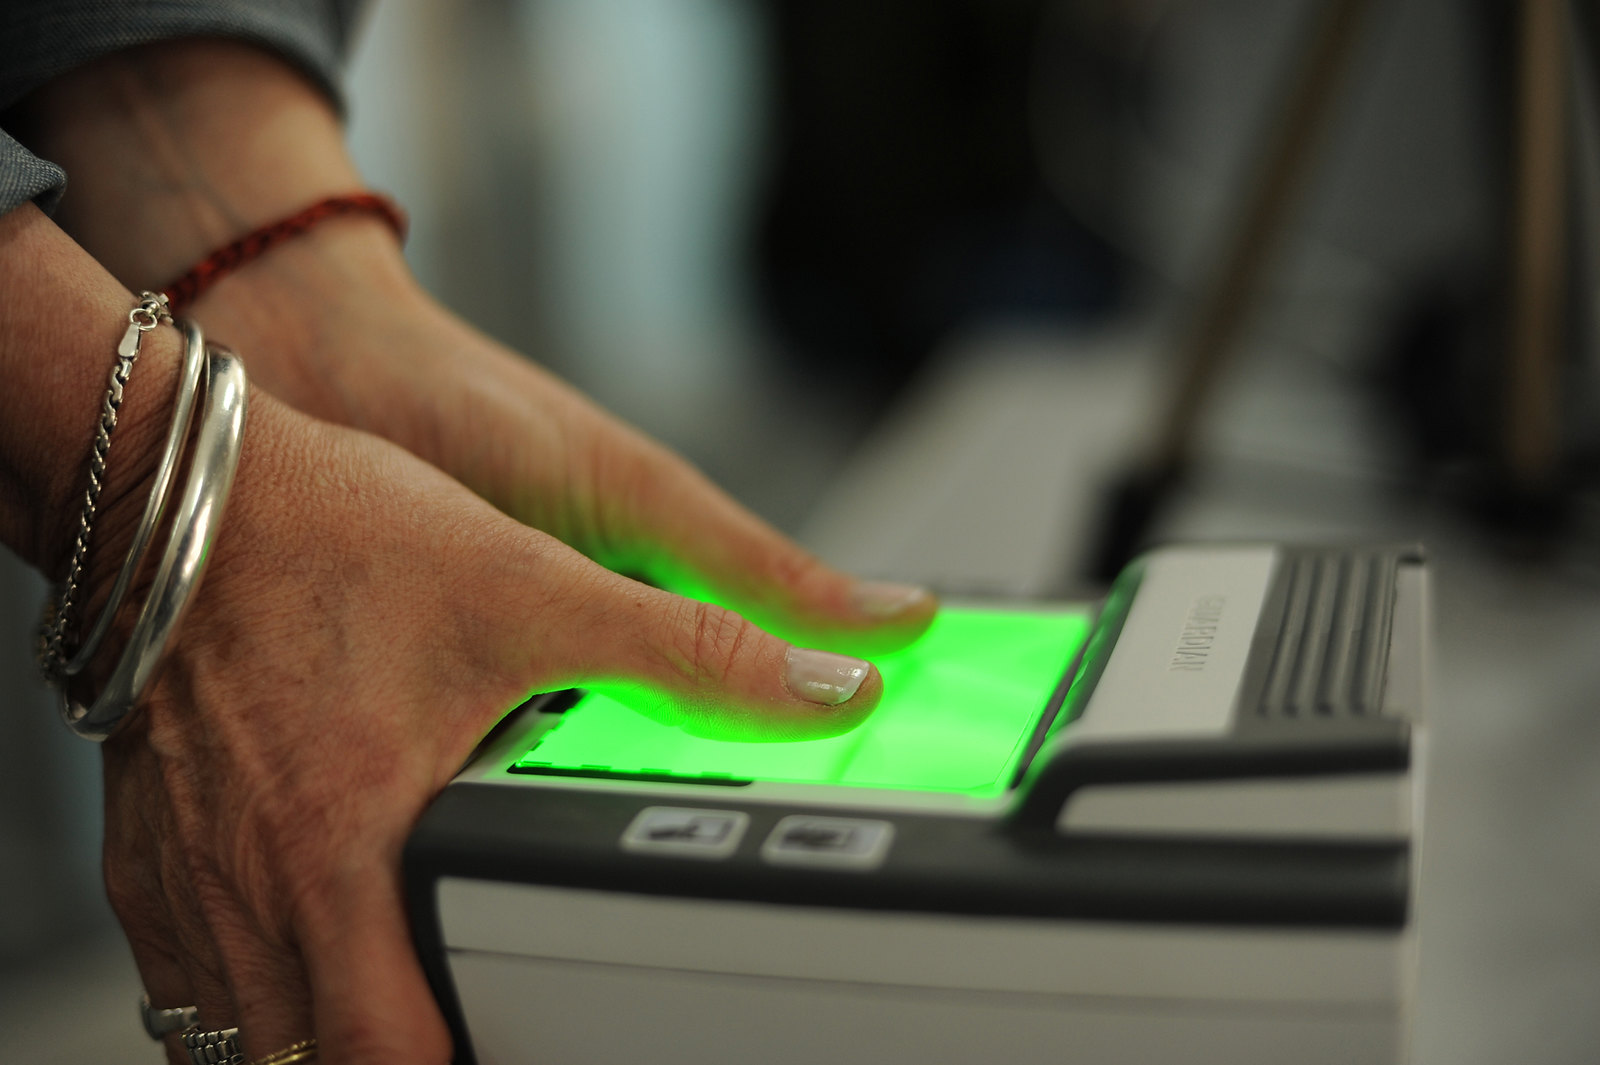 INEC launches online portal for voter registration